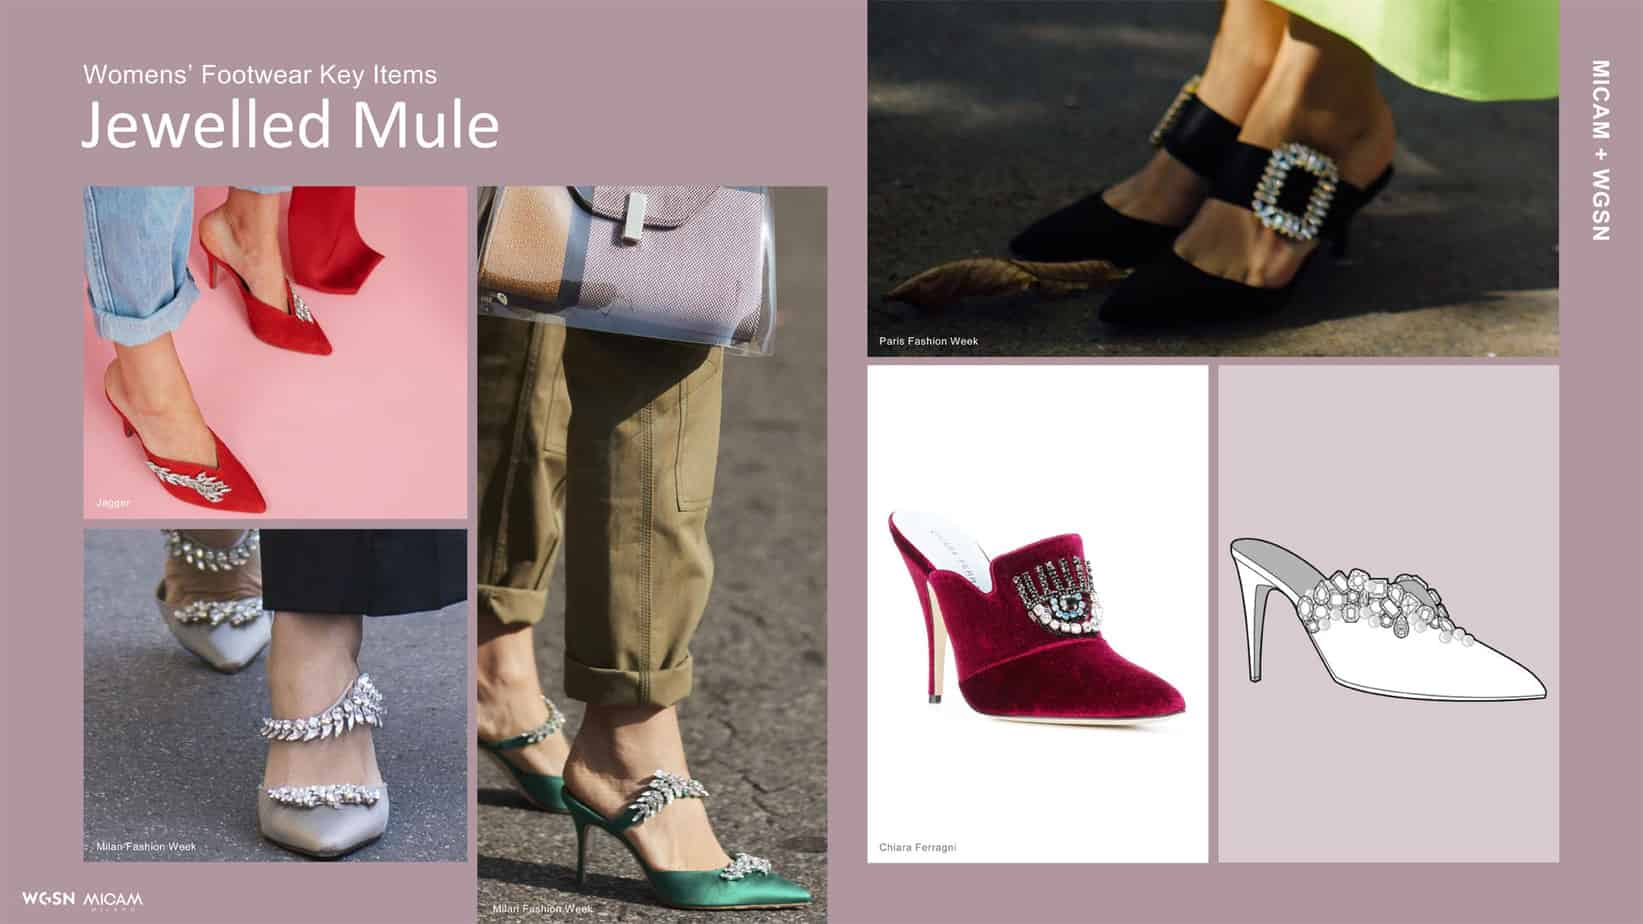 Womens' Footwear Key Items Jewelled Mule